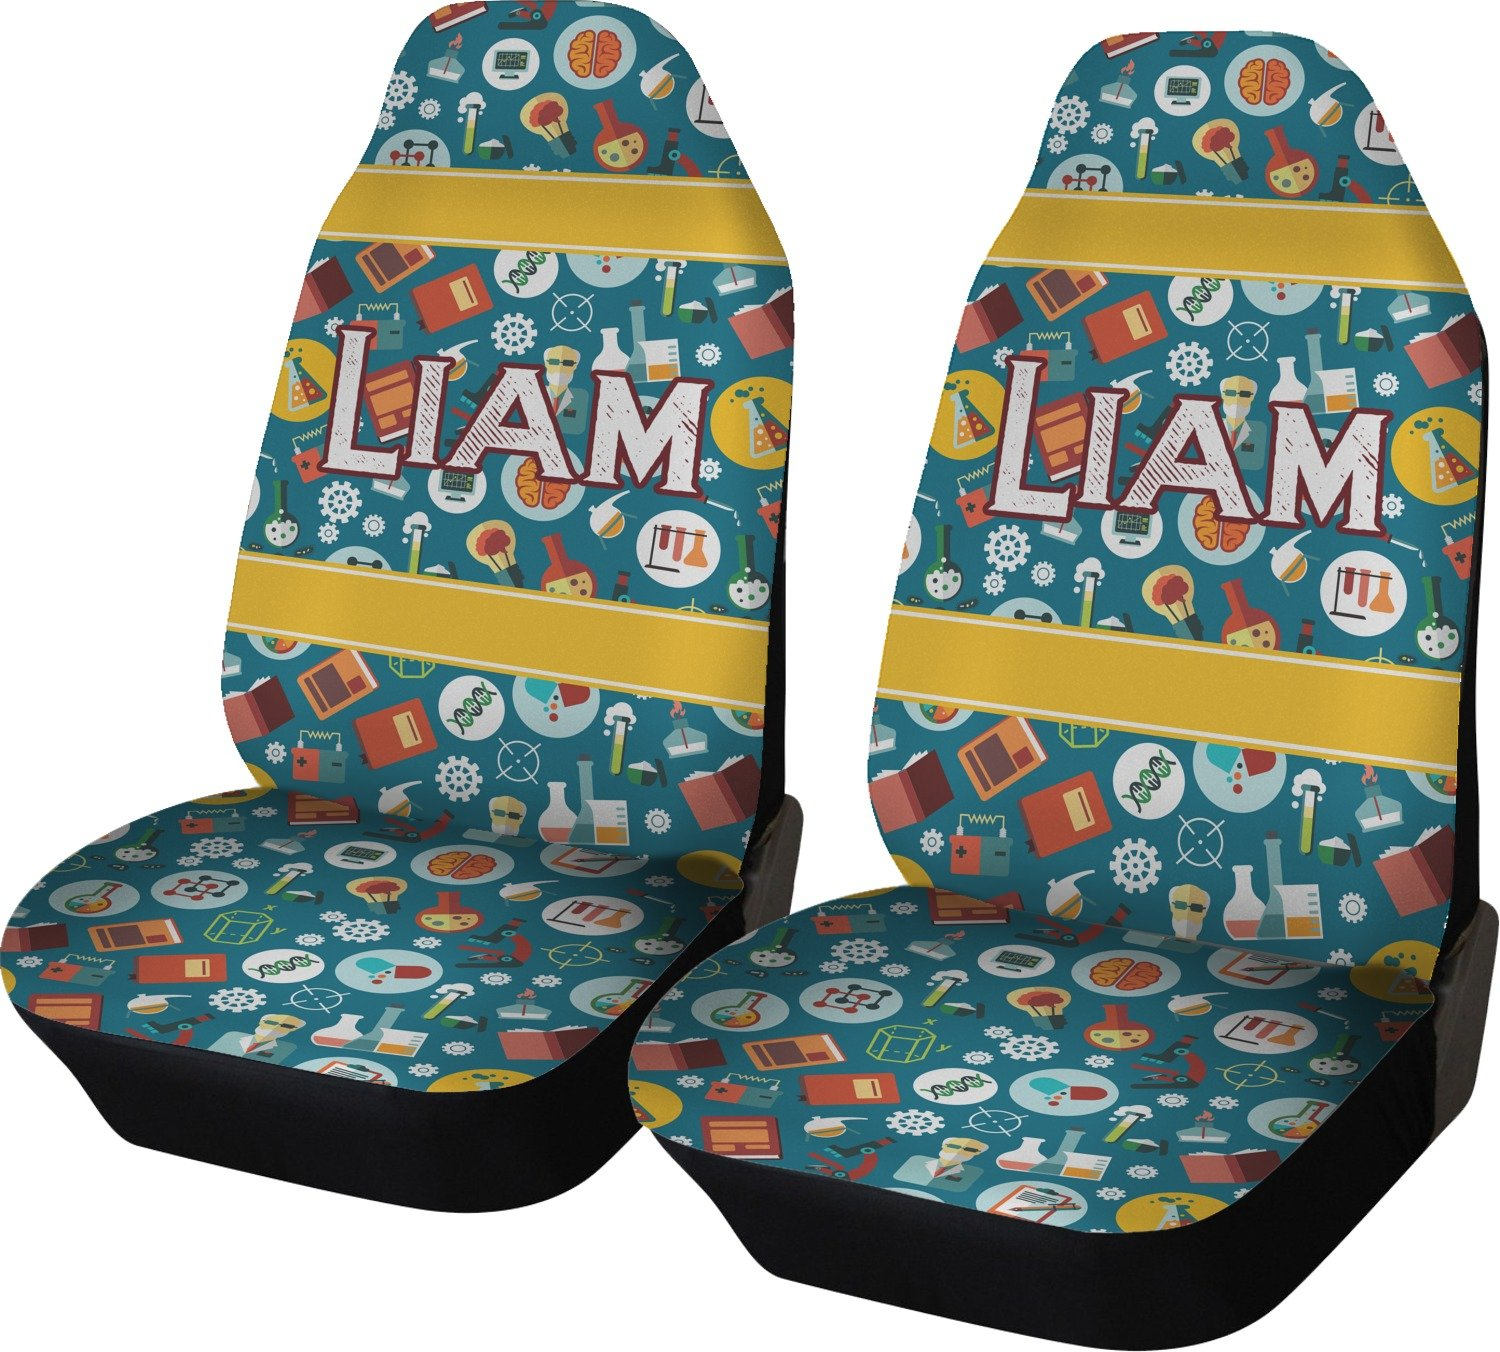 Rocket Science Car Seat Covers (Set of Two) (Personalized)